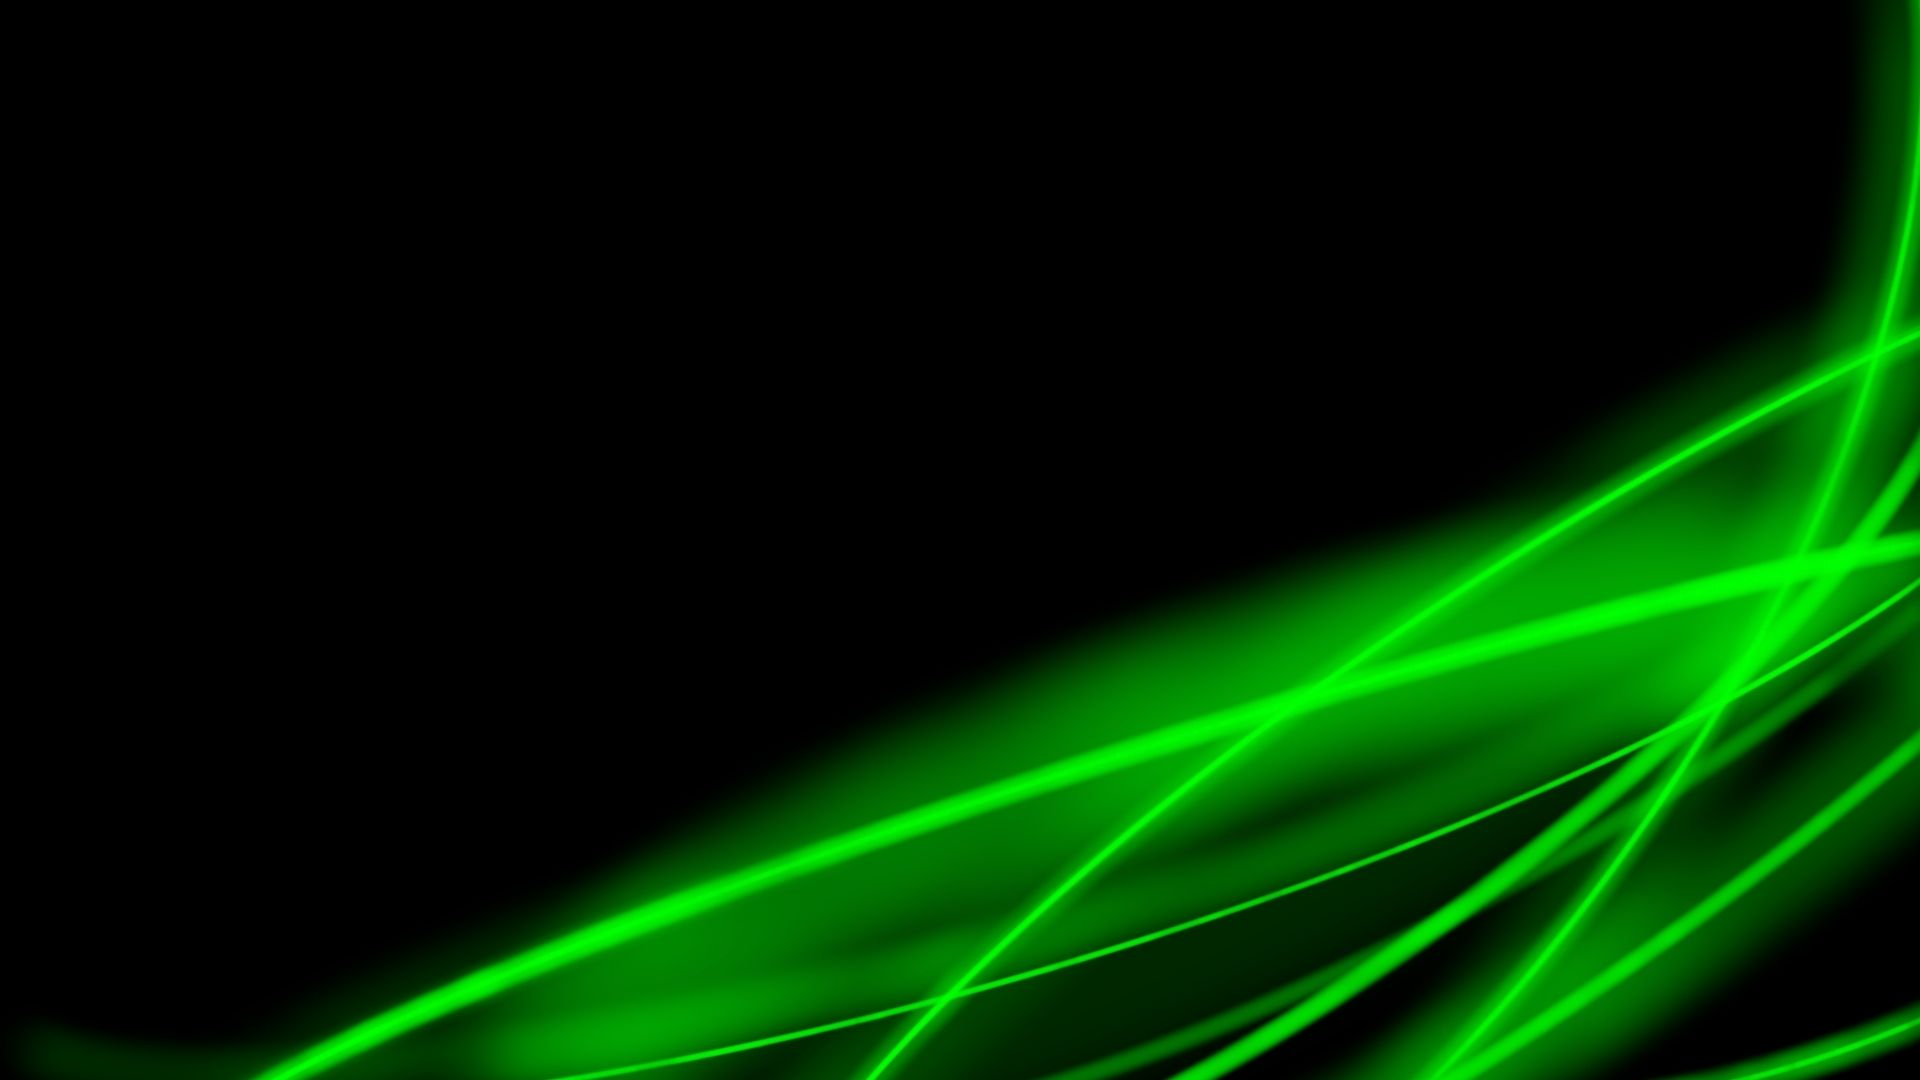 Pin By Dehfault Citoyen On Gradients Green And Black Background Green Wallpaper Phone Green Wallpaper